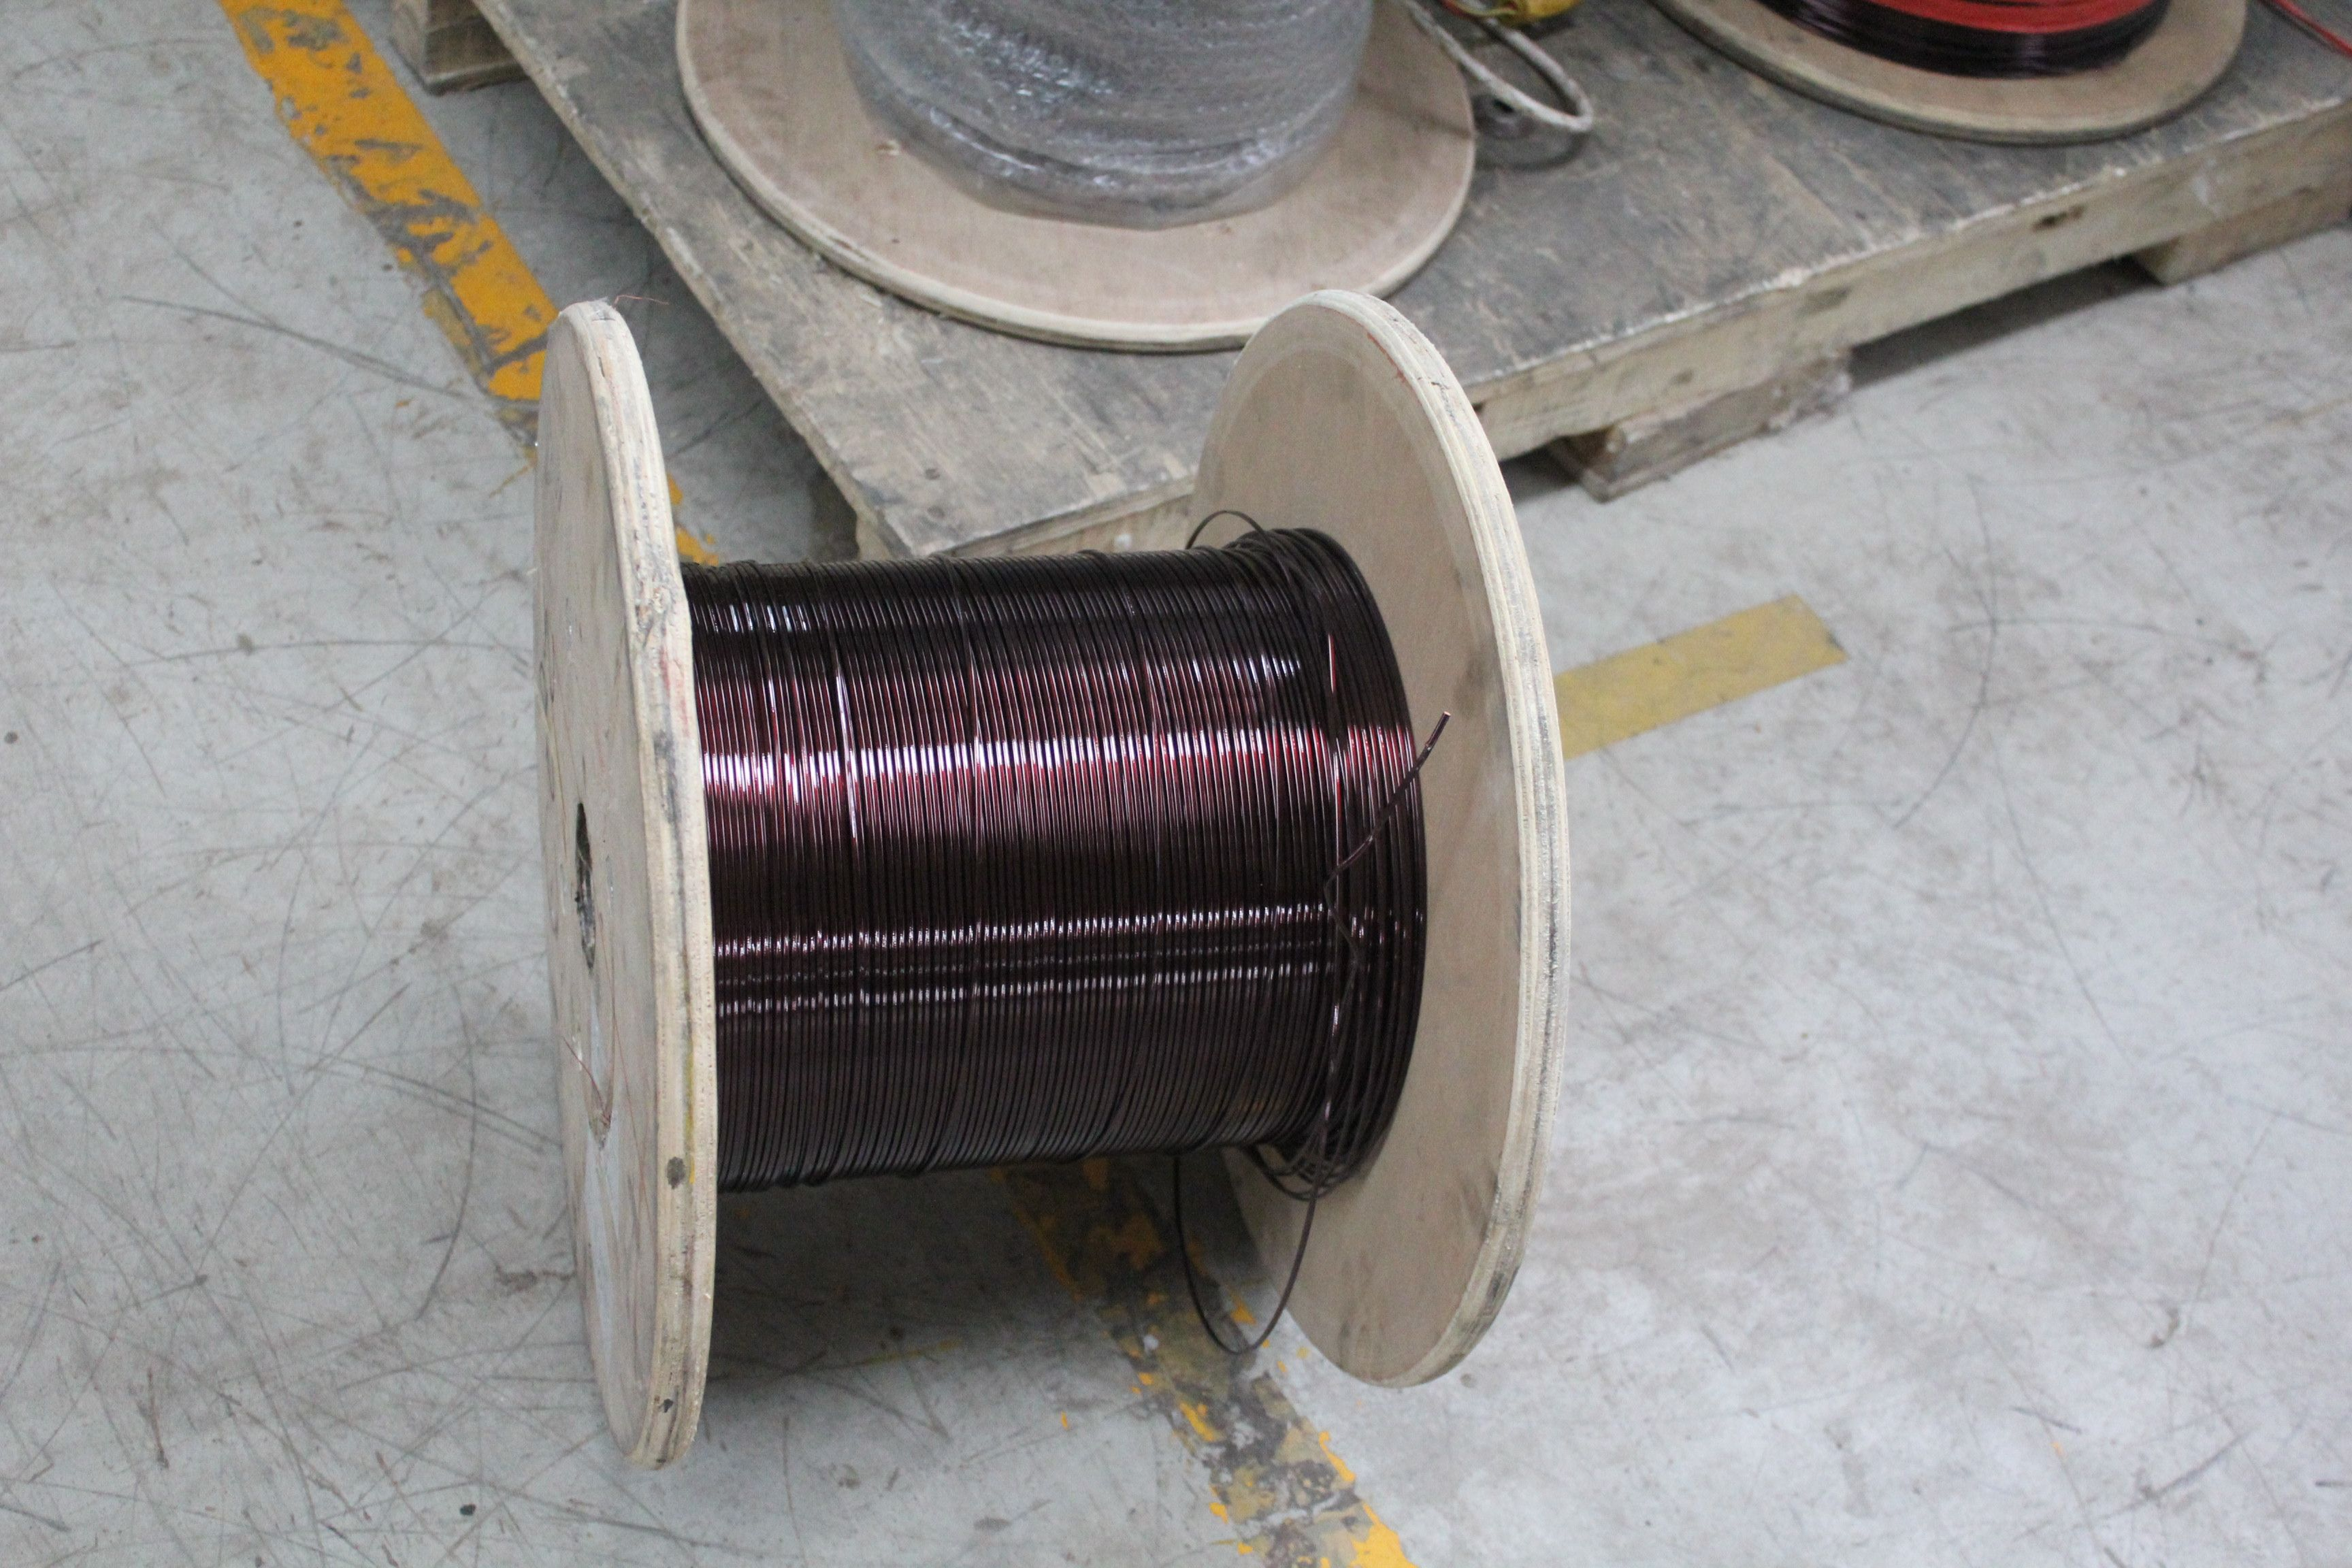 hight resolution of enameled aluminum wire s flame retardant level is b so it has good better shielding effectiveness and high mechanical property